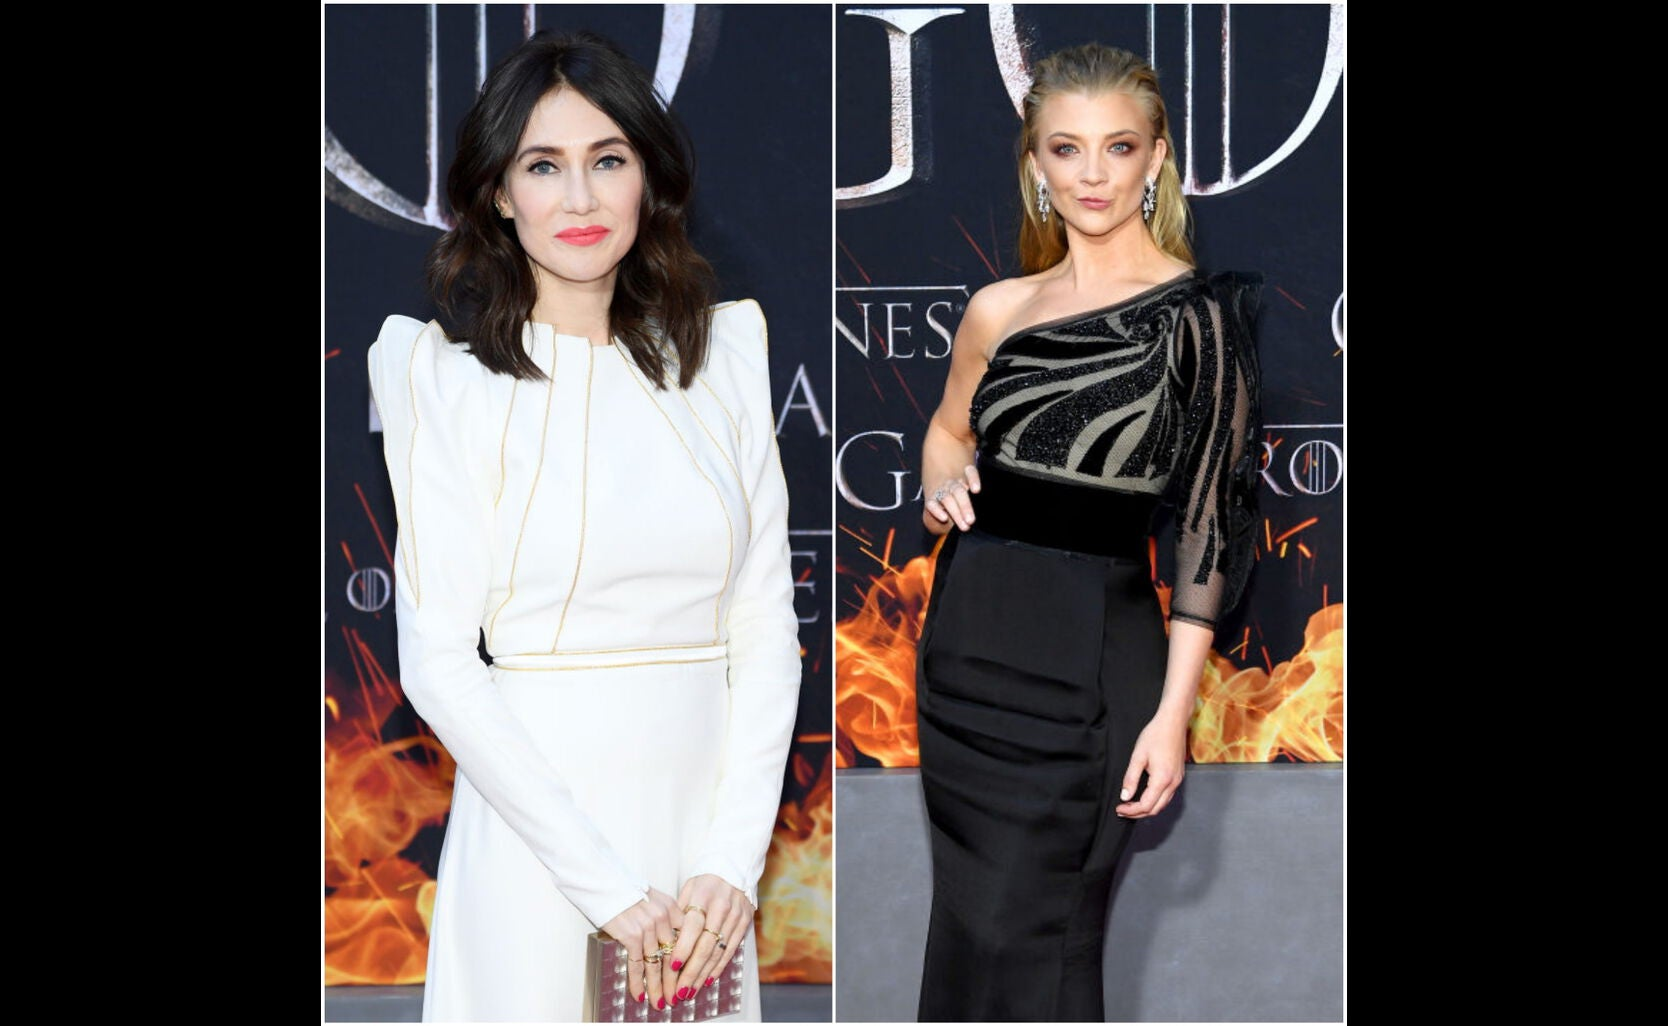 Carice van Houten and Natalie Dormer at the premiere of Game of Thrones s 8